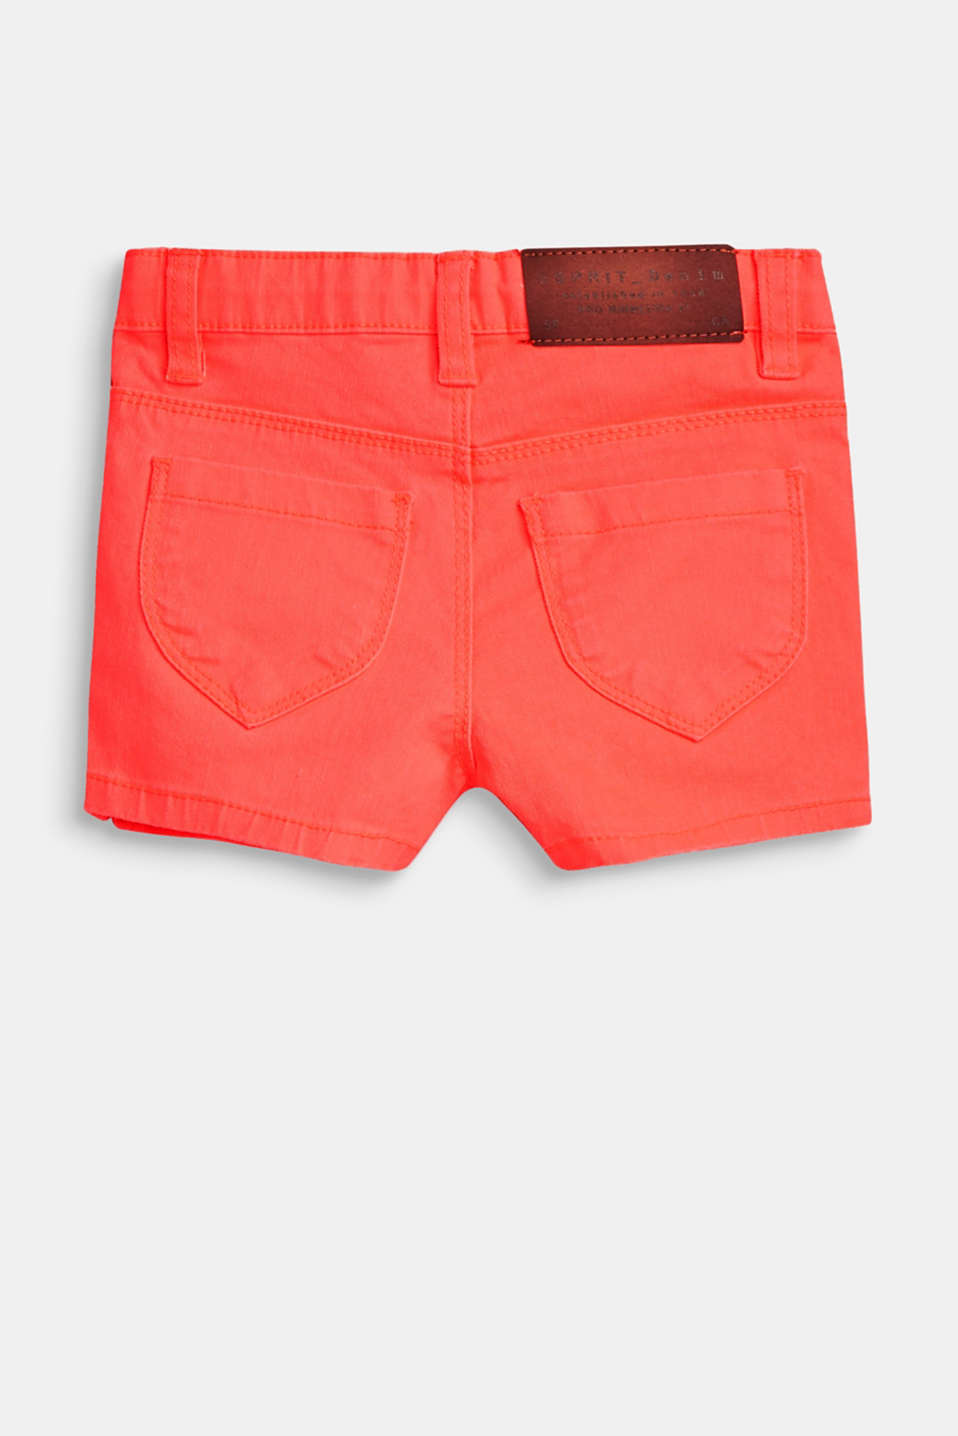 Coloured stretch denim shorts with an adjustable waistband